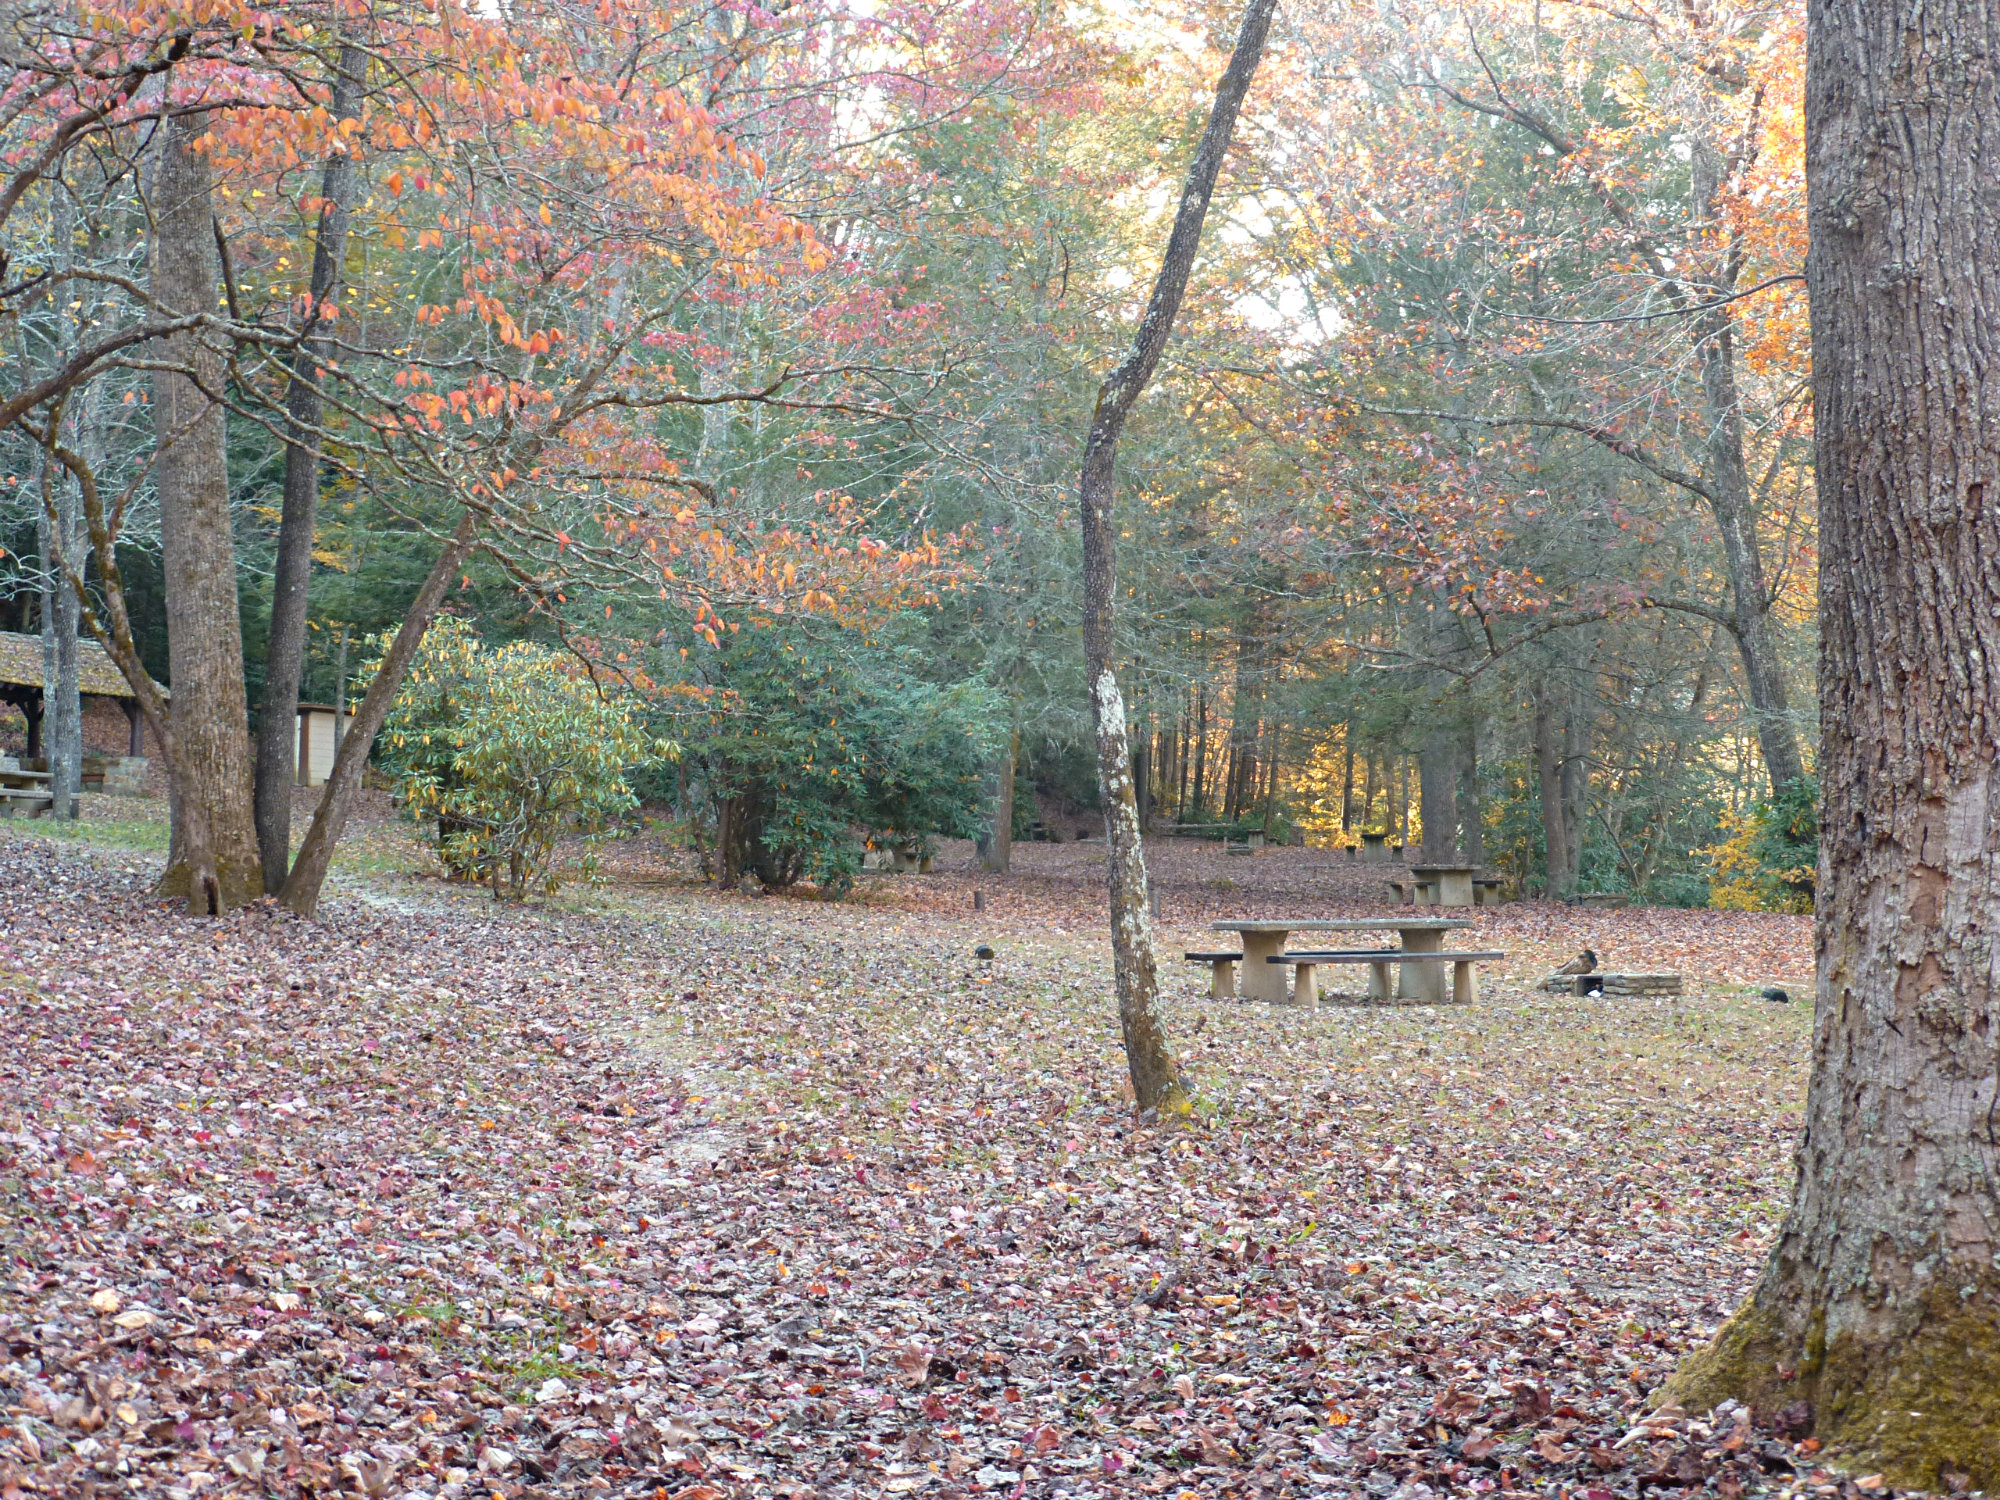 Vast picnic area with tables in a beautiful wooded setting in the fall